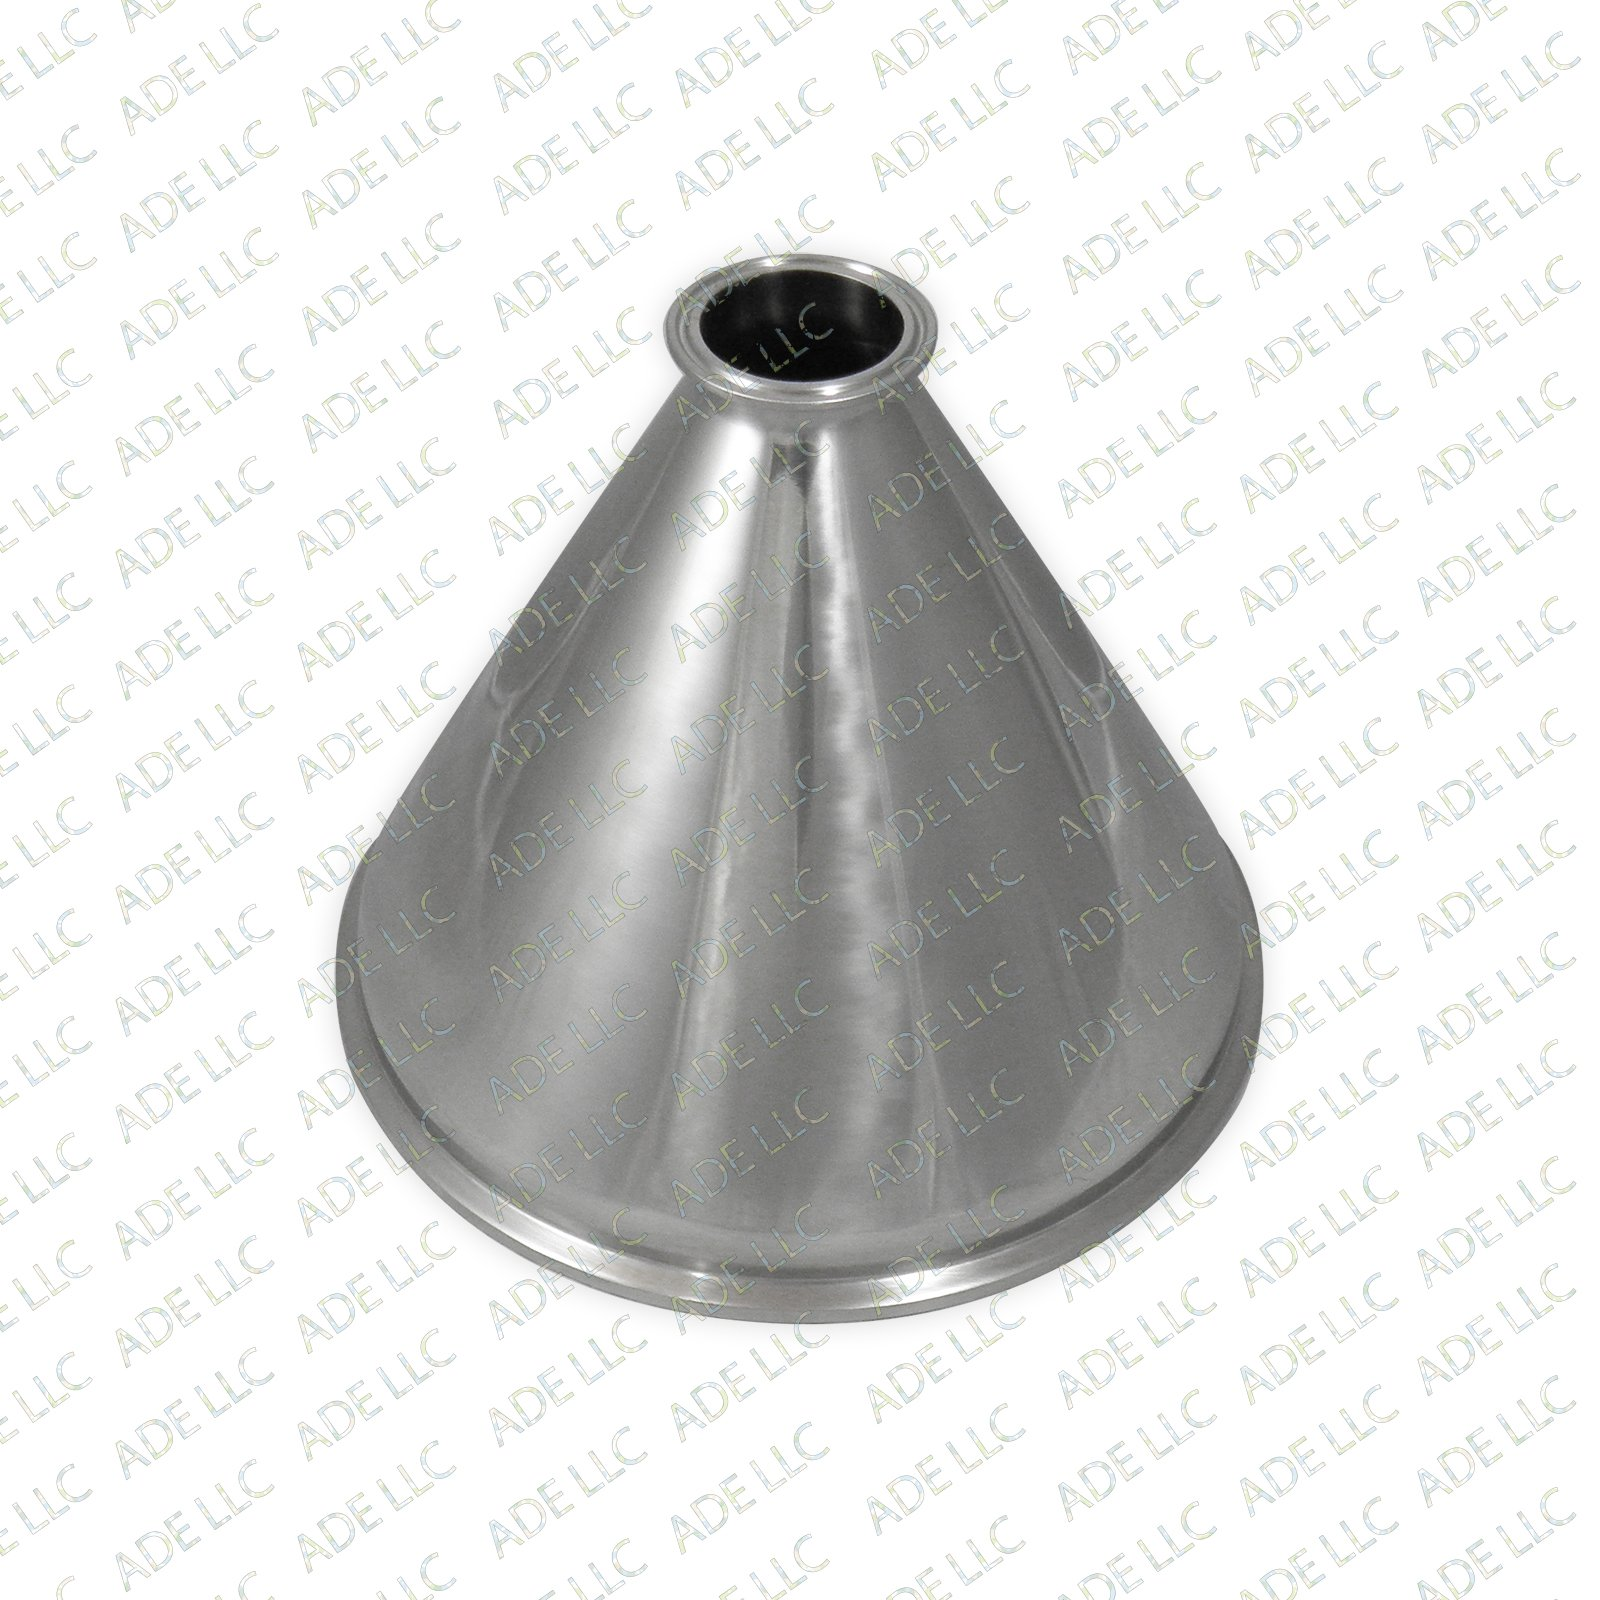 10'' x 2'' Tri Clamp, Tri Clover, Sanitary, Concentric Reducer, 304 Stainless steel